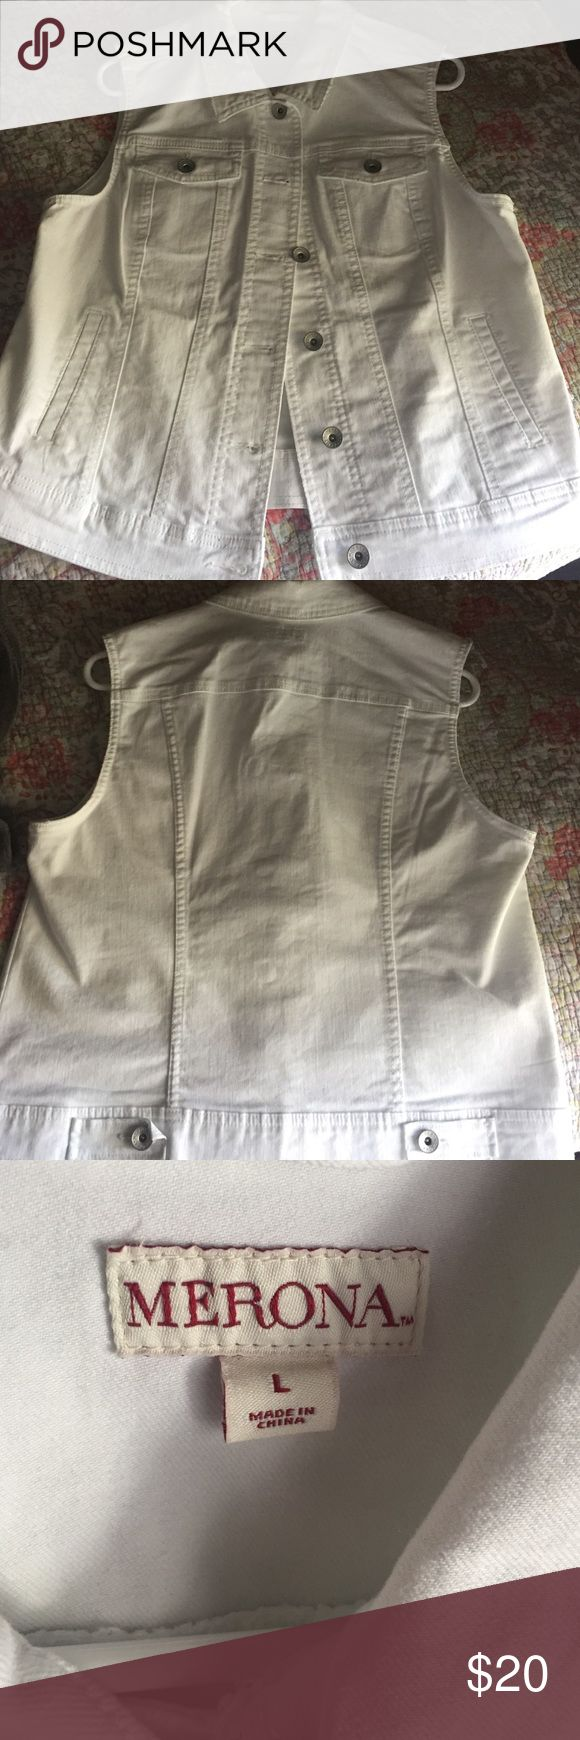 White jean vest Brand new, never worn. But tags were pulled off. True to size. Merona Jackets & Coats Vests